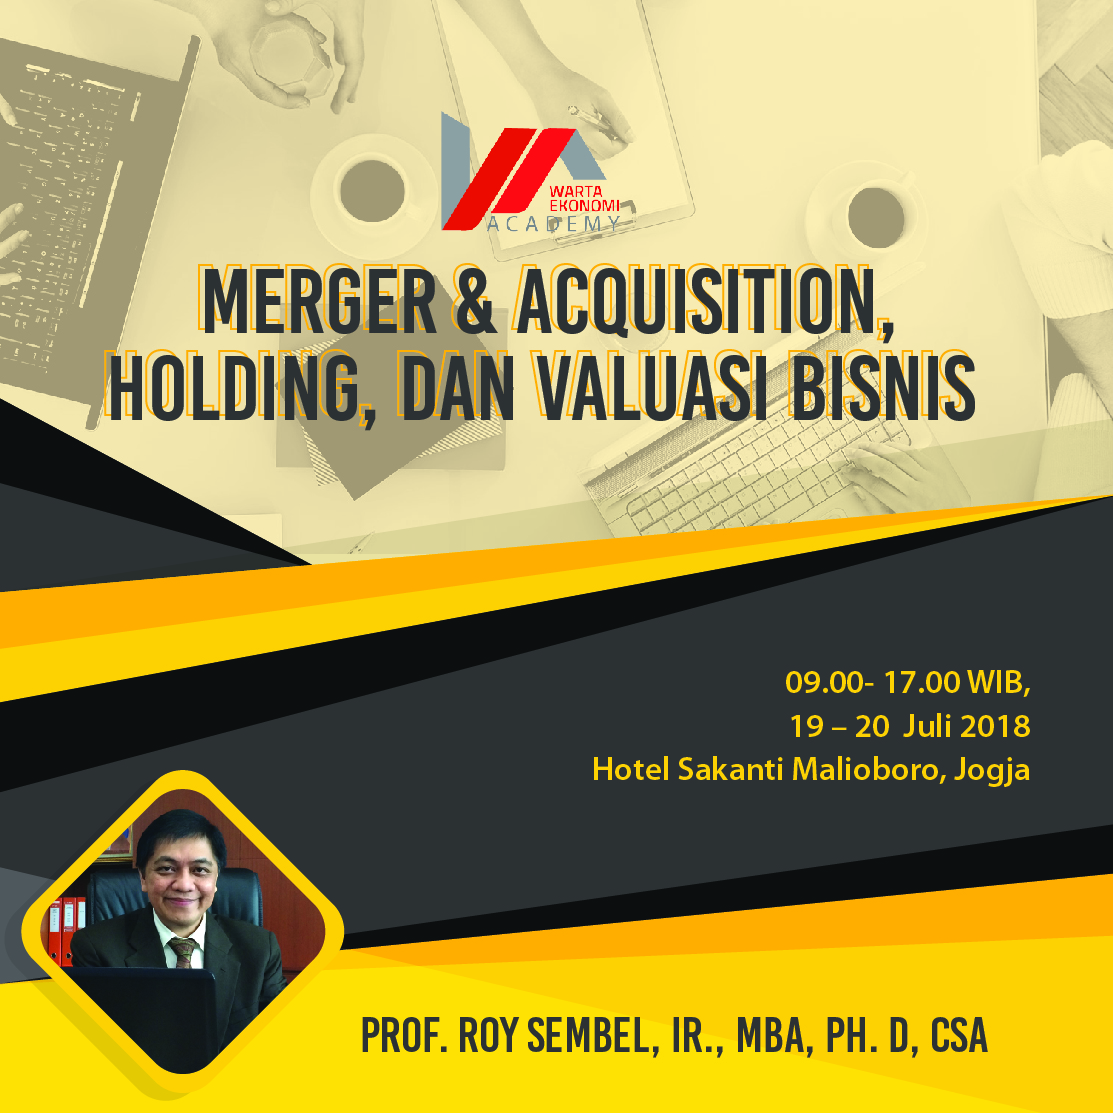 Merger & Acquisition, Holding, dan Valuasi Bisnis